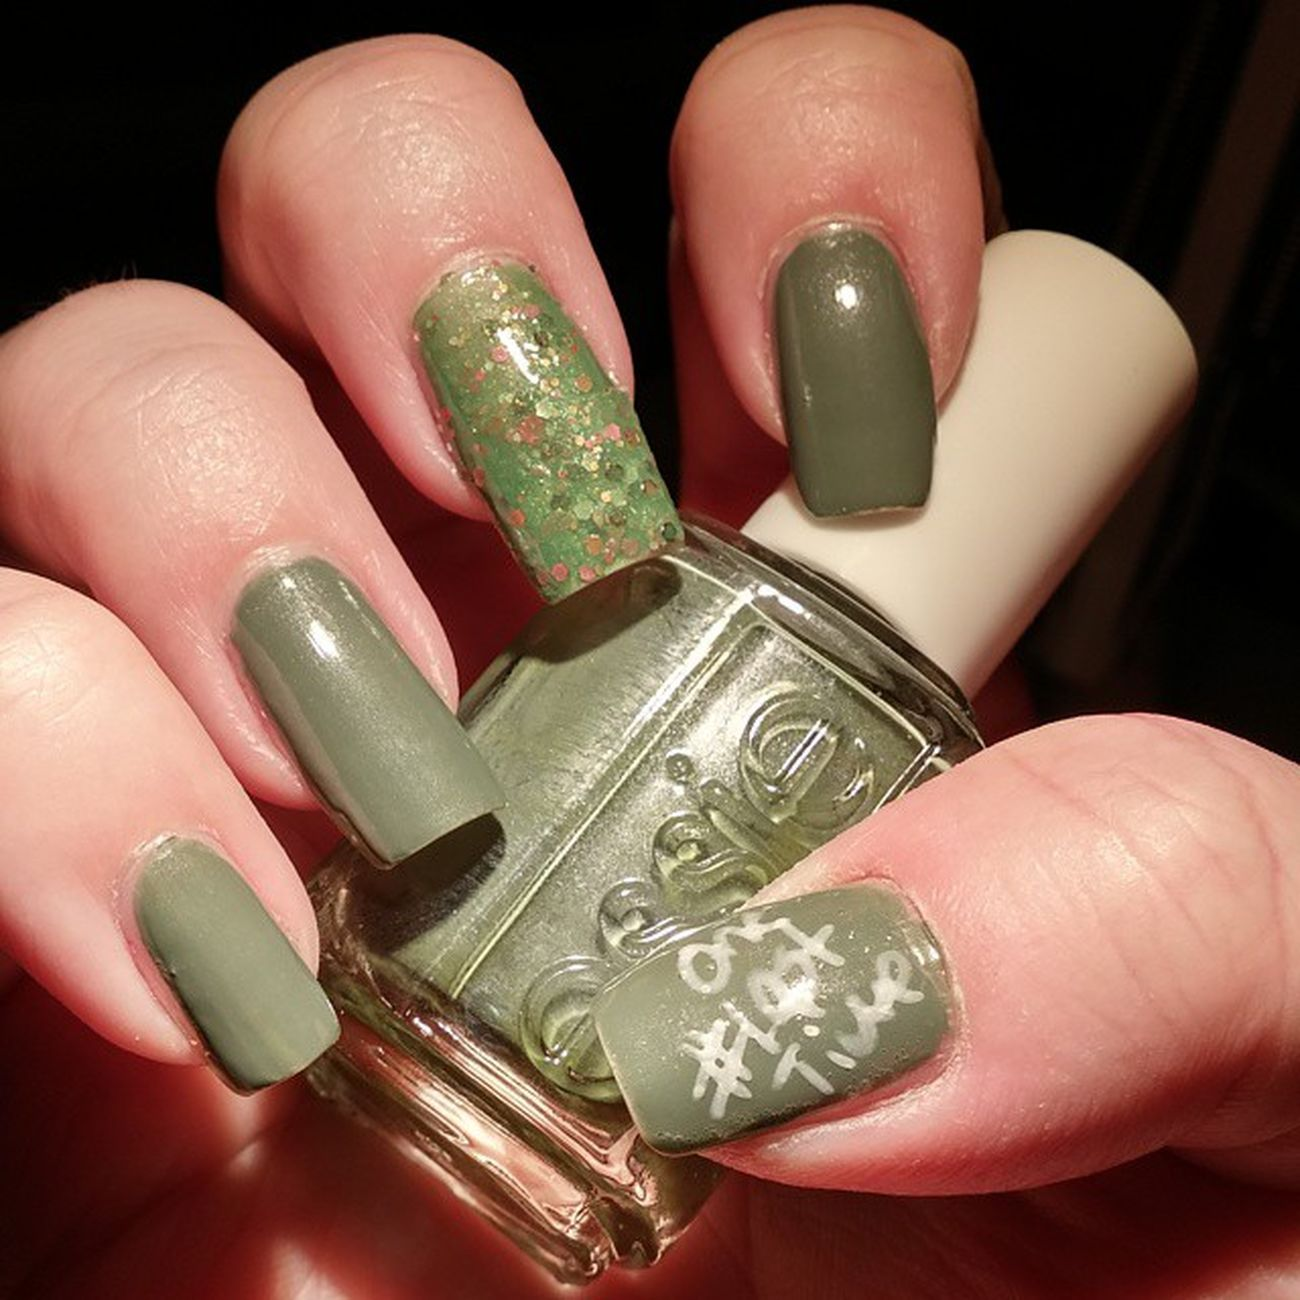 Back home Onelasttime Hobbit Preview Essie Notd Scofflaw